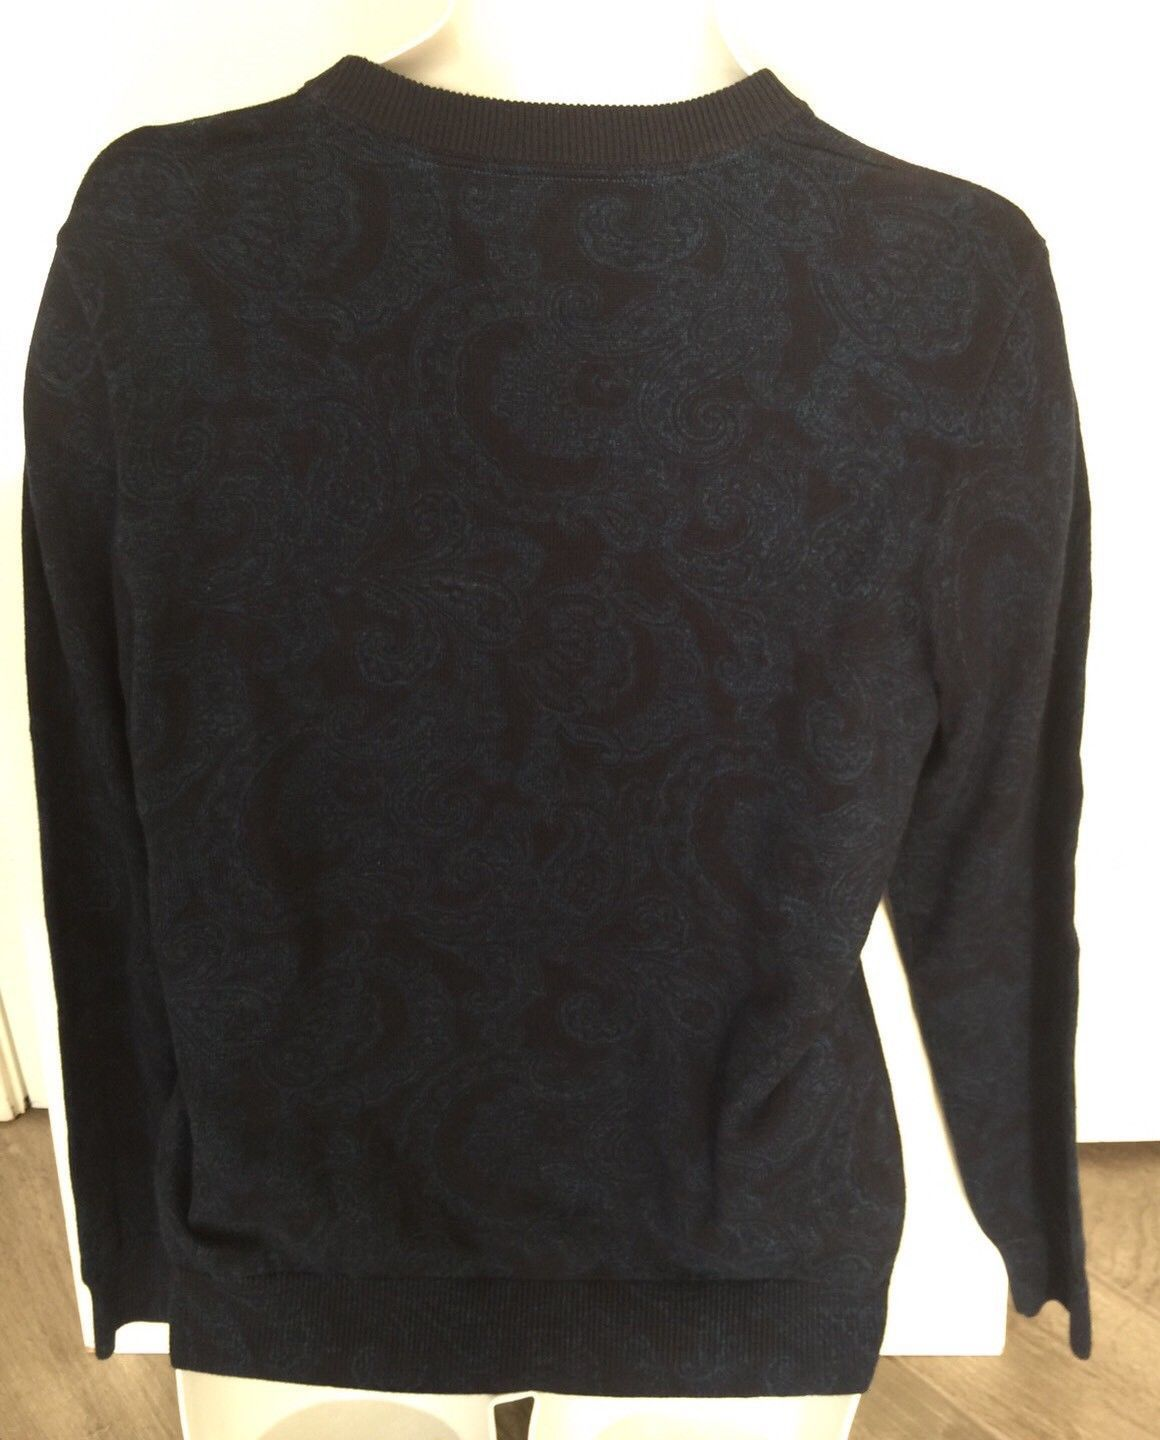 New $110 Men's Tommy Hilfiger Blue Paisley Cotton Sweater Sz M & 2XL